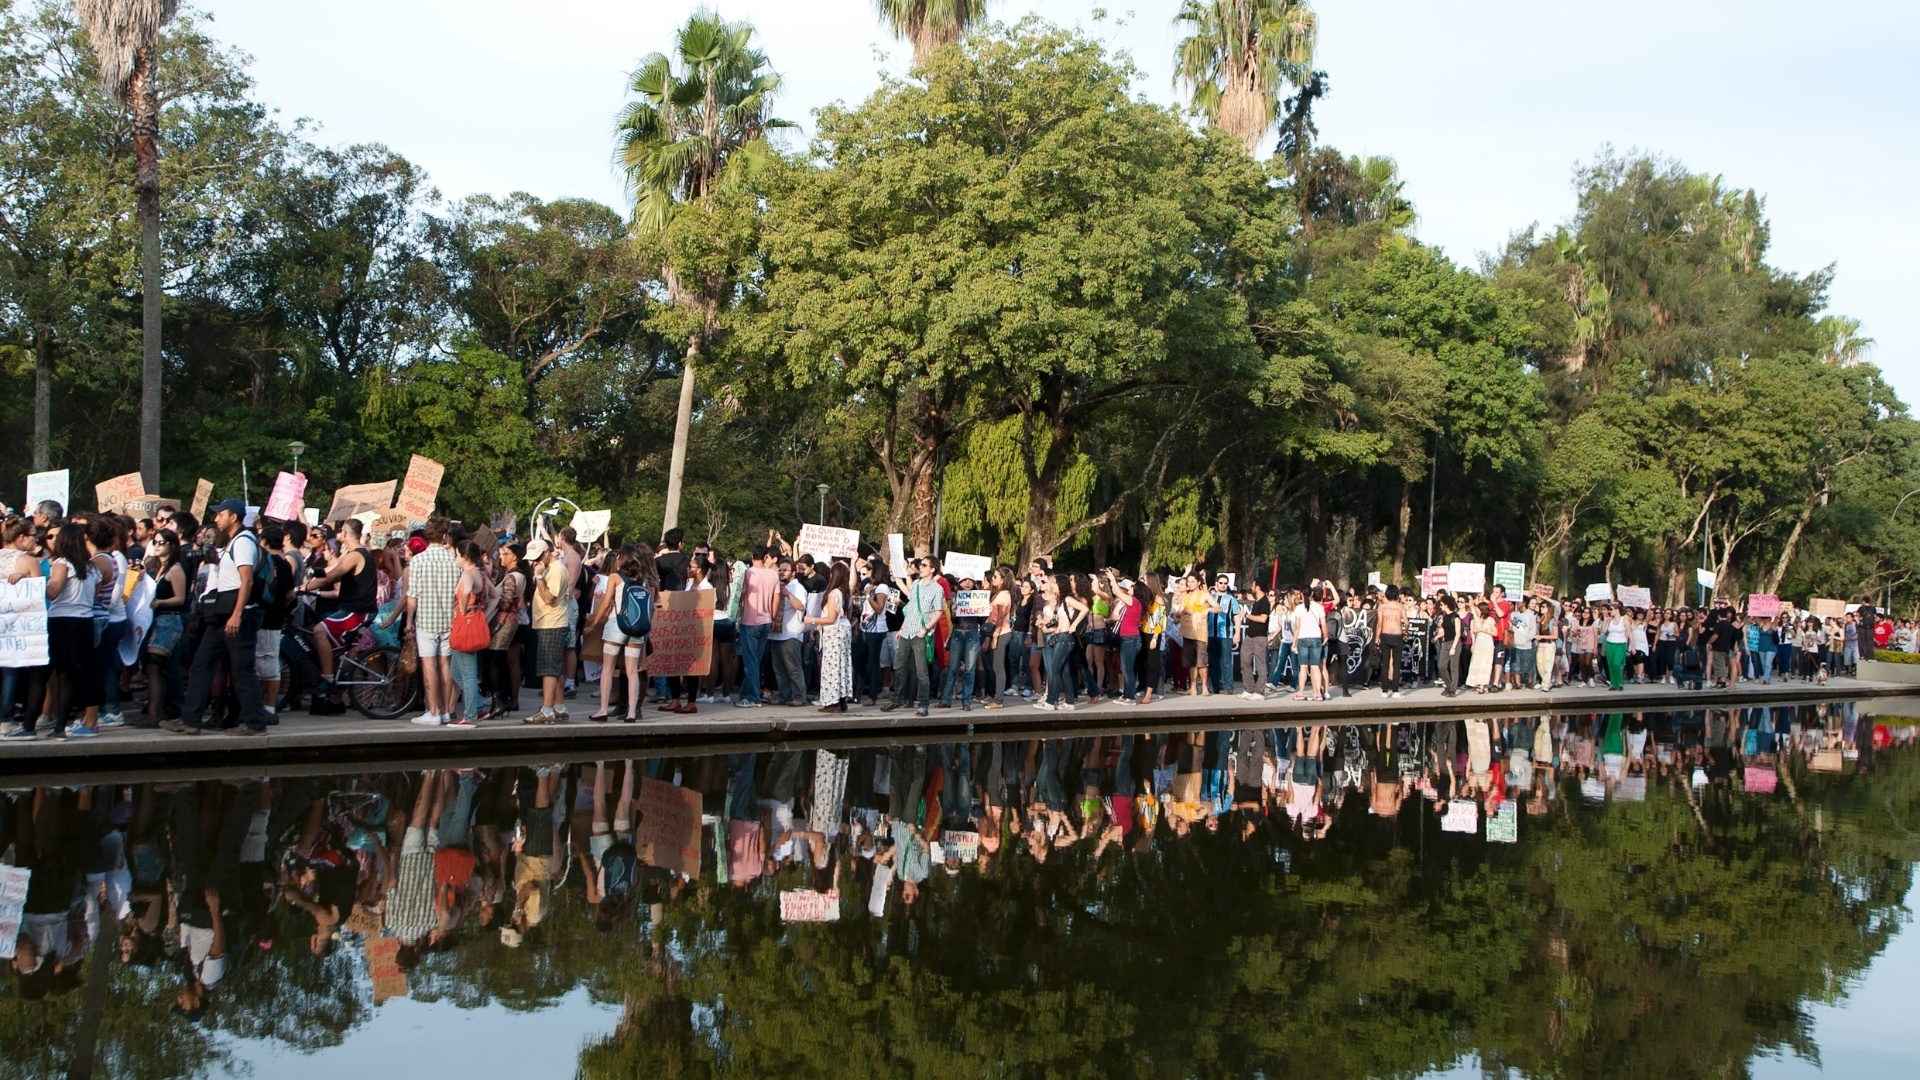 27.mai.2012 - Em Porto Alegre, a Marcha das Vadias saiu do Parque da Redeno. Neste fim-de-semana, vrias outras cidades tambm organizaram o protesto, em defesa dos direitos das mulheres